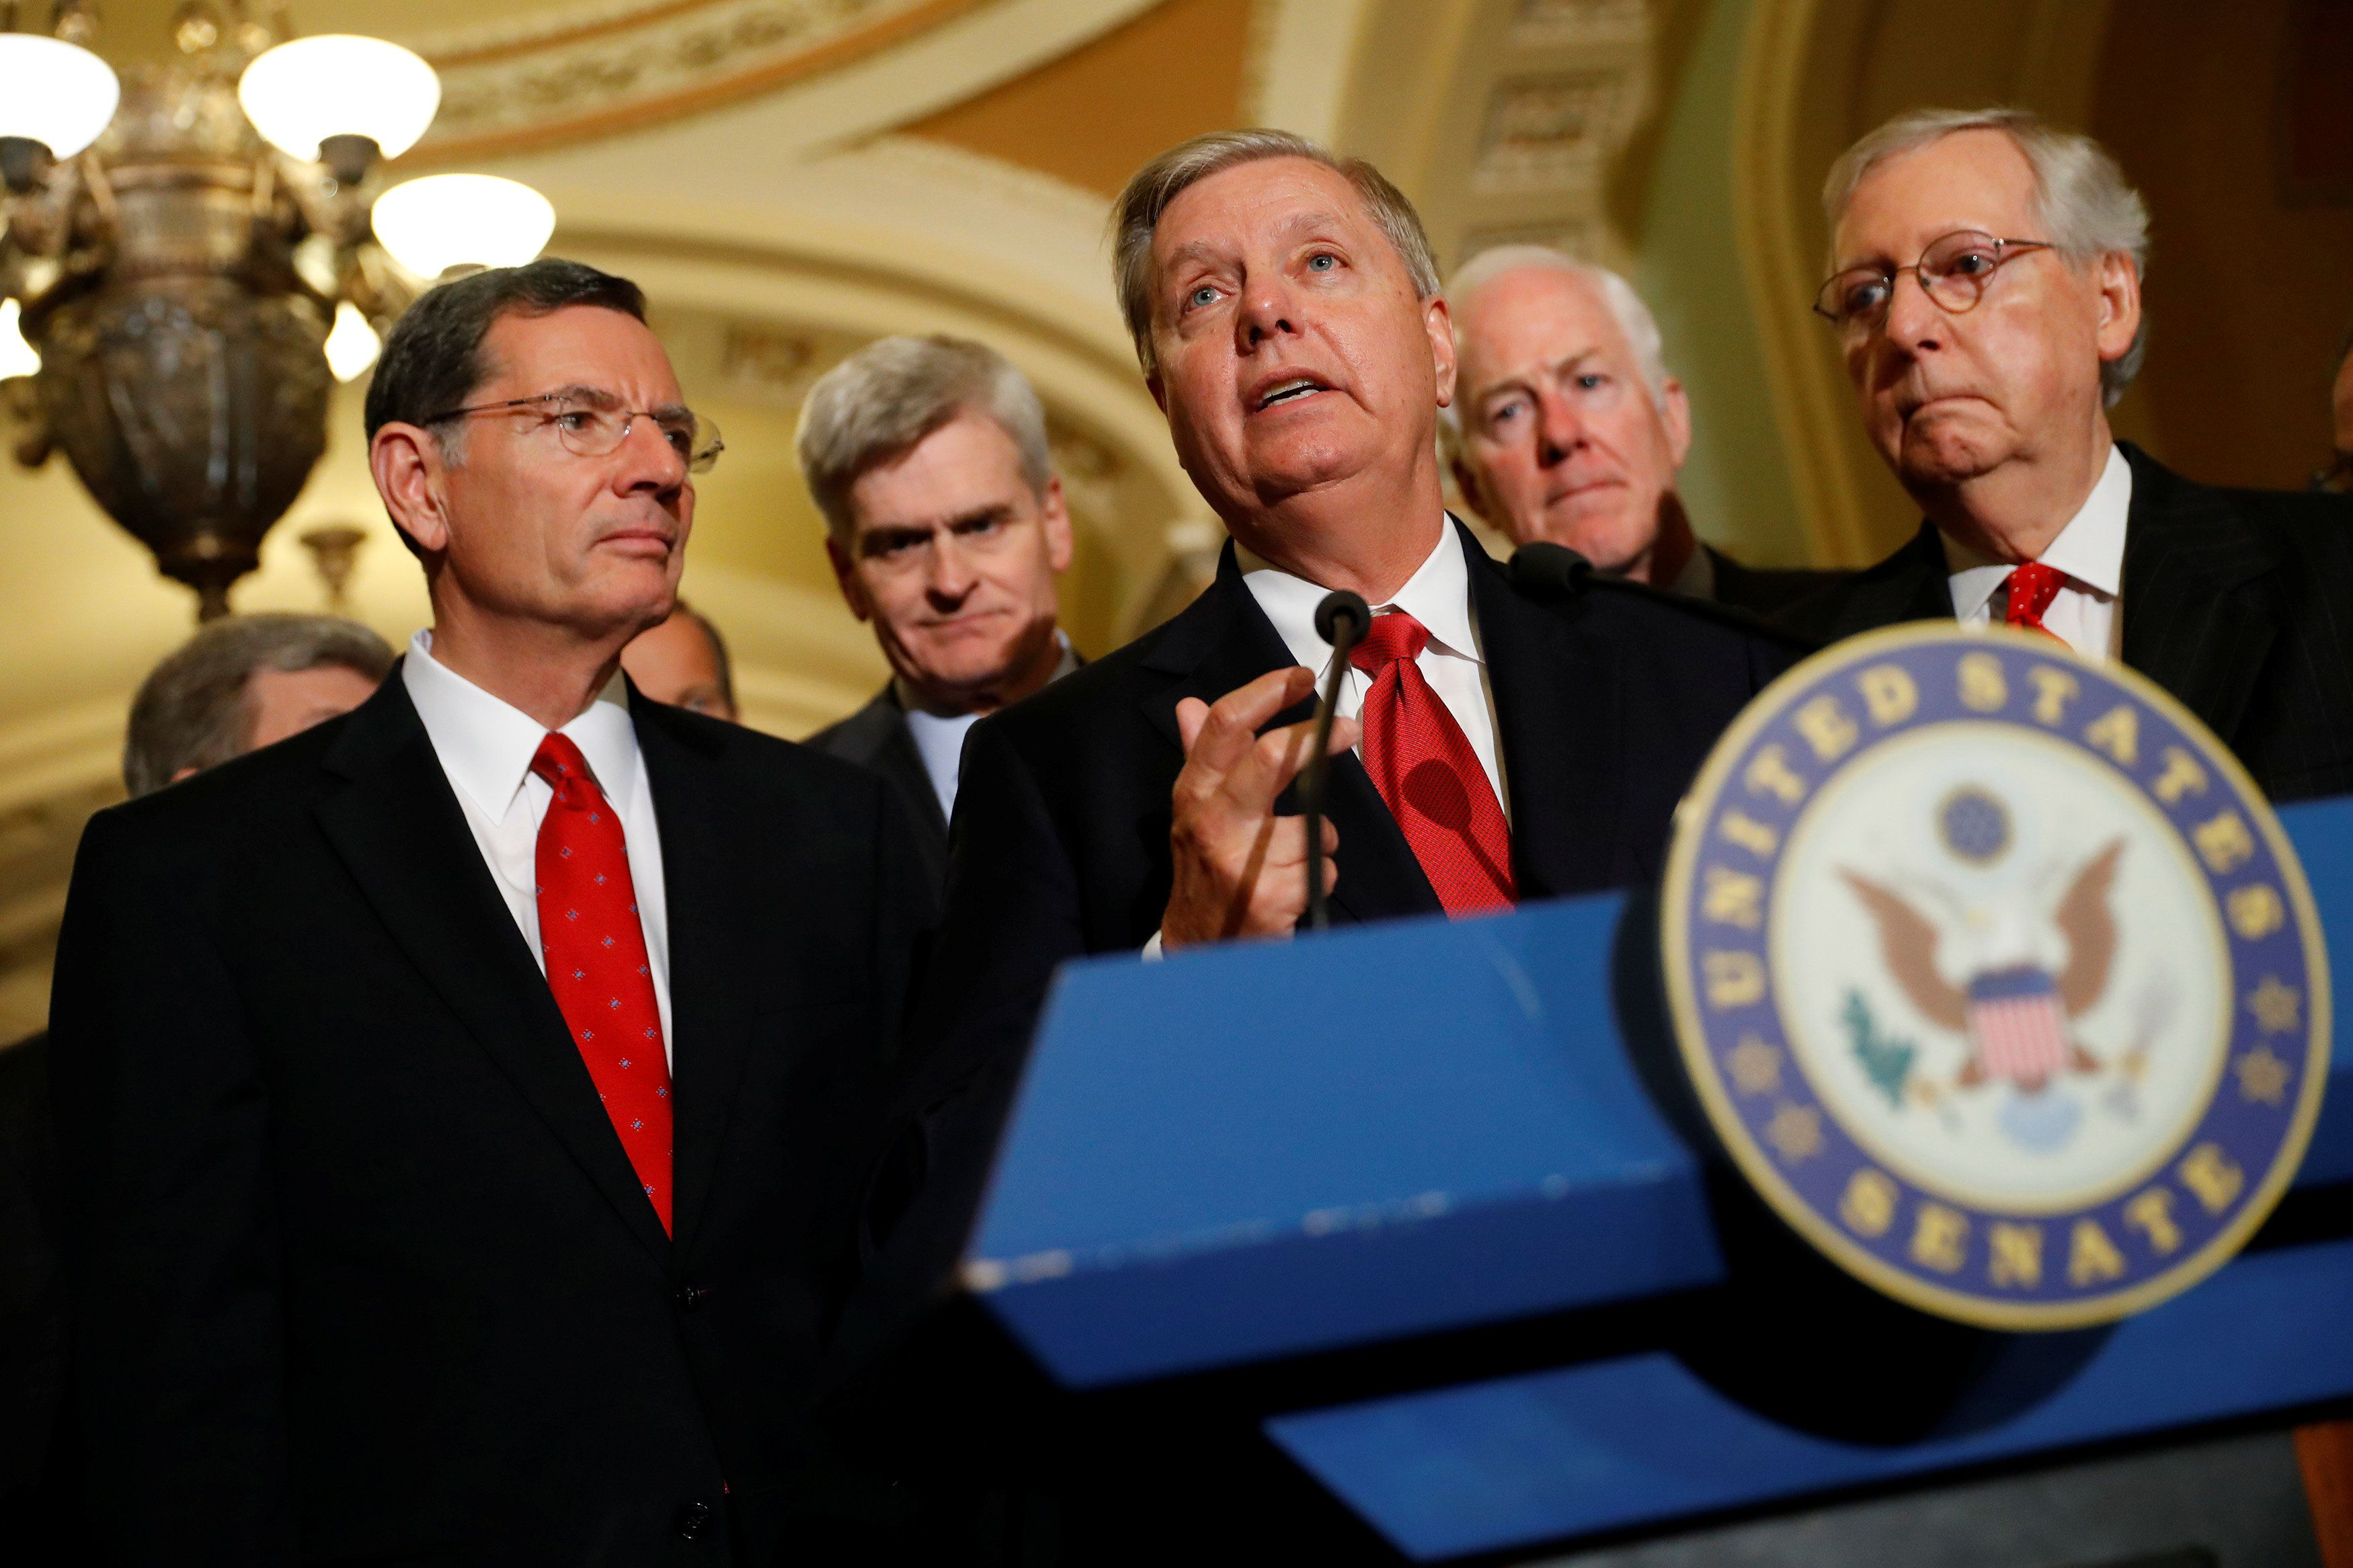 GOP Sens. John Barrasso (Wyo.), Bill Cassidy (La.) and Lindsey Graham (S.C.) — three sponsors of the new bill — w